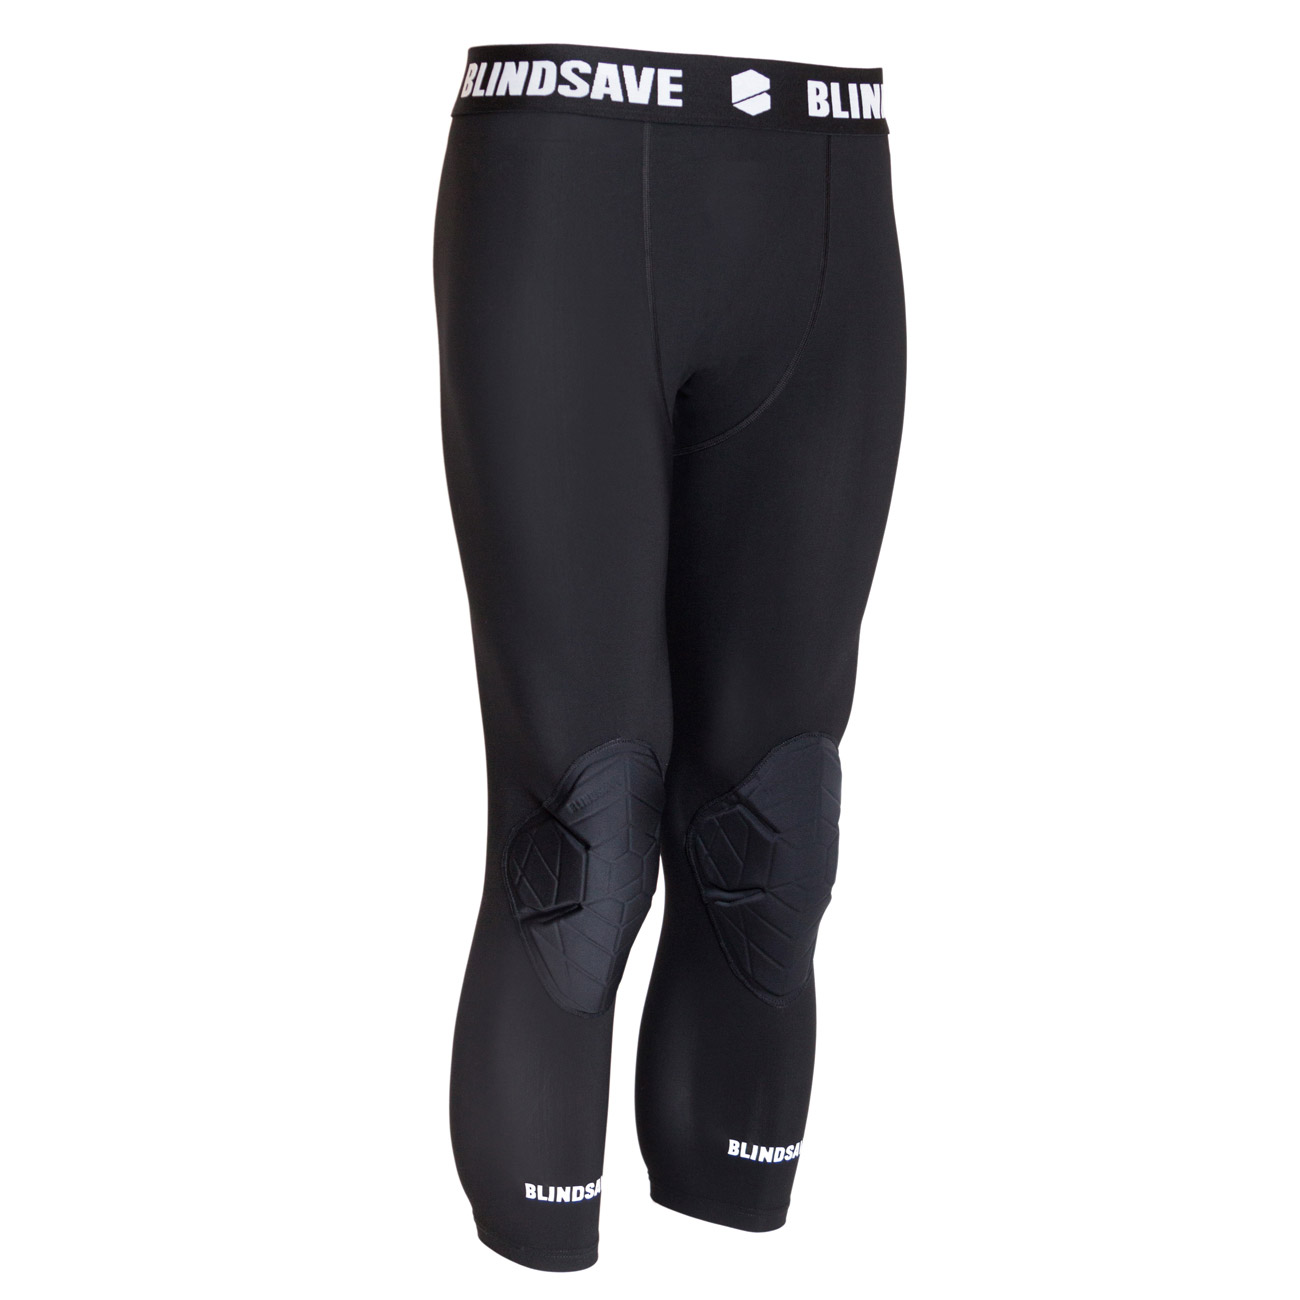 BLINDSAVE Protective 3/4 Tights mit Kniepads